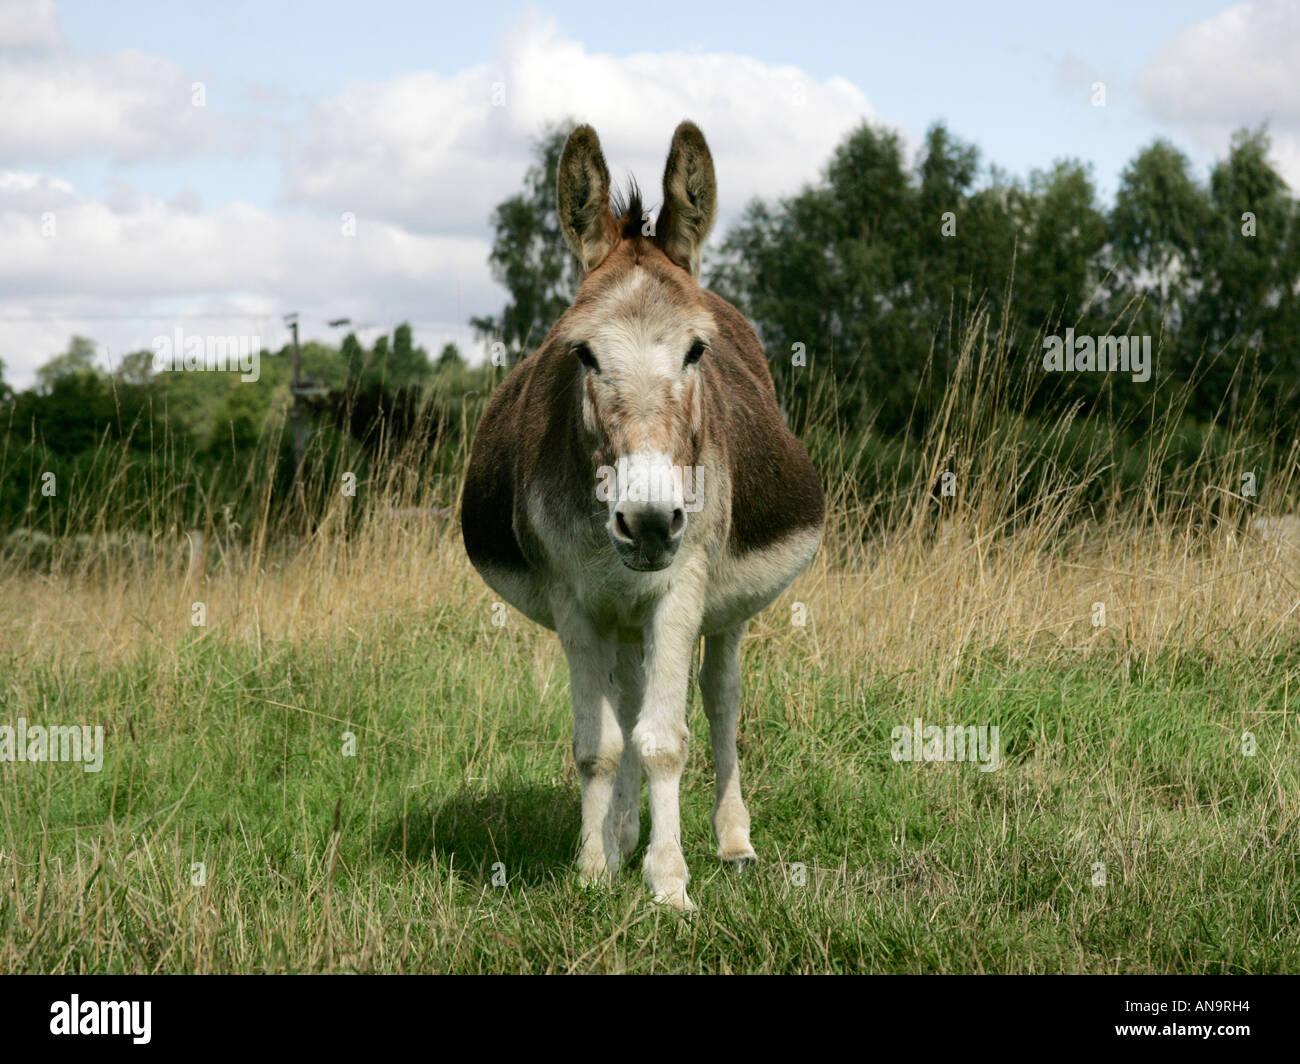 a large fat overweight donkey stock photo 8833619 alamy